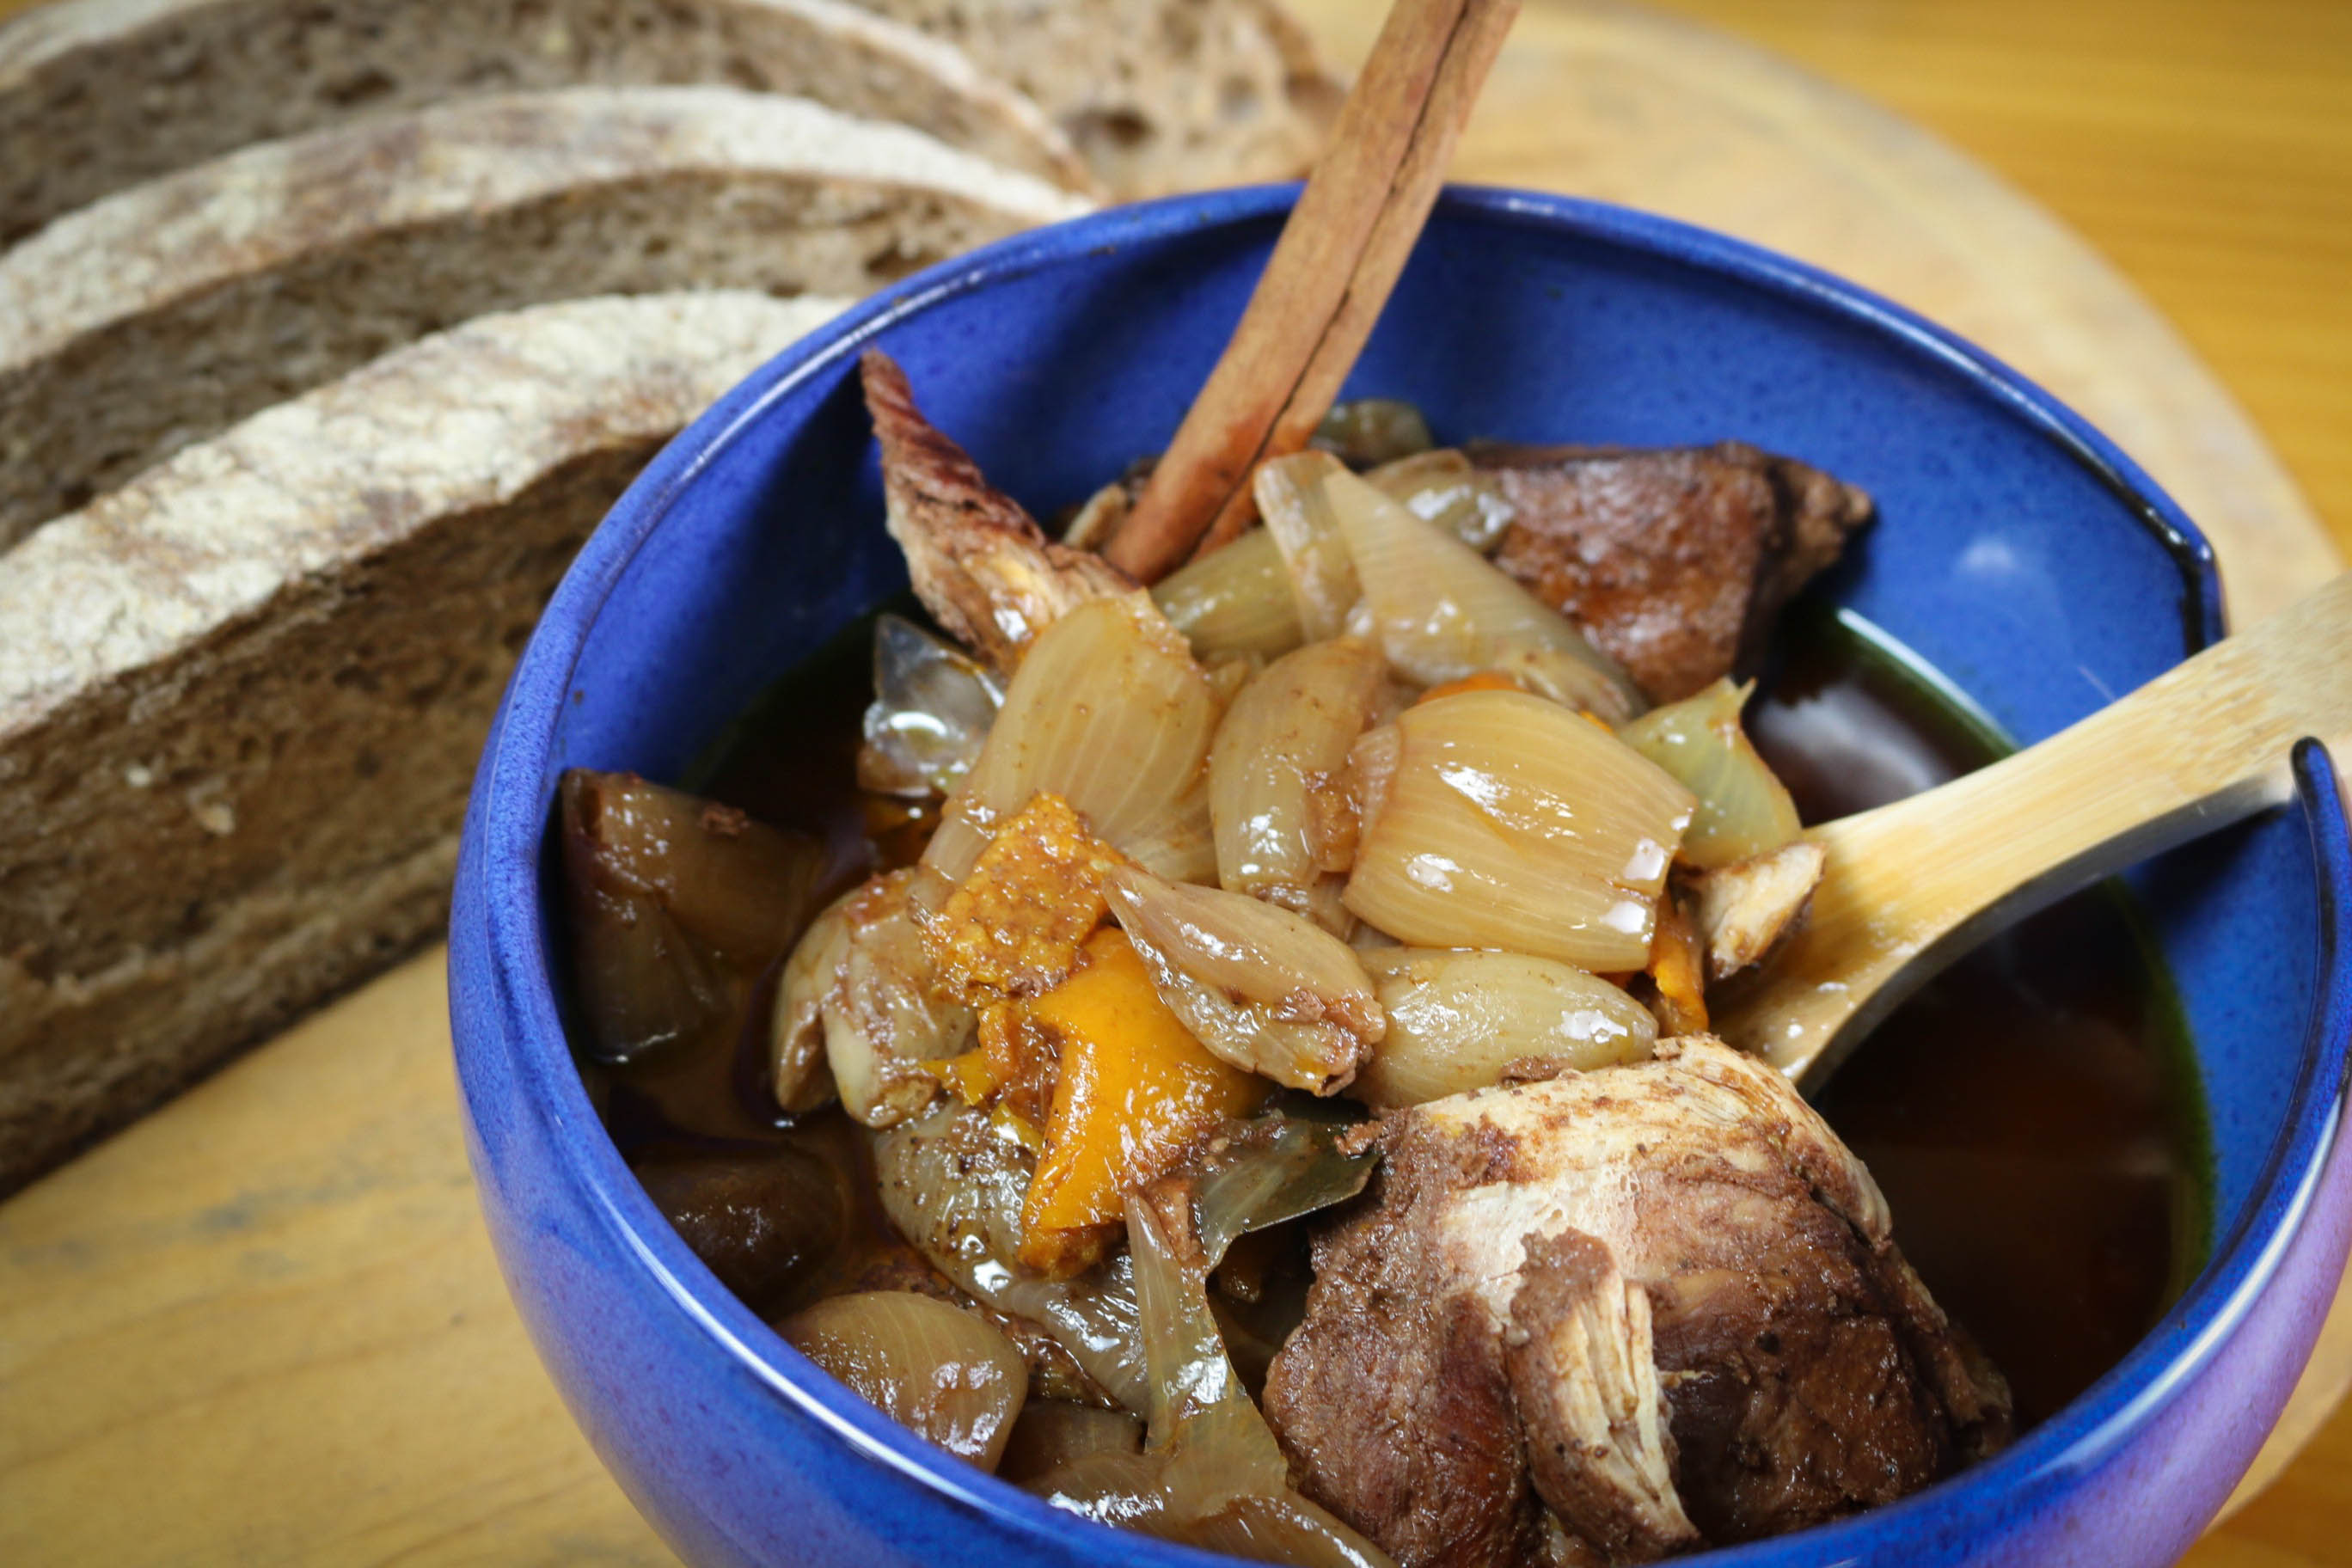 Mediterranean Diet: Chicken Stifado in Bowl